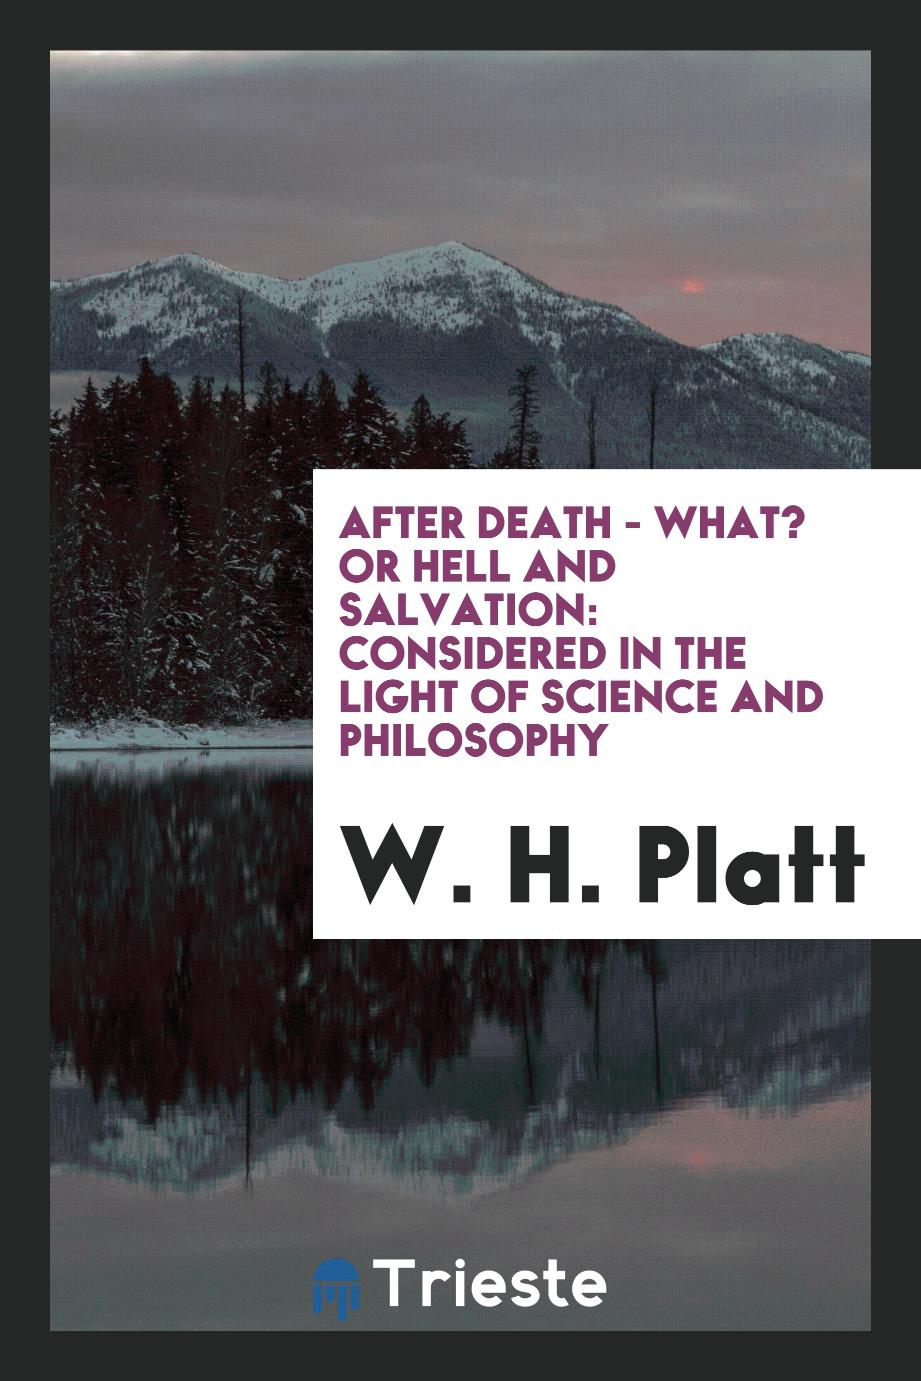 After Death - What? Or Hell and Salvation: Considered in the Light of Science and Philosophy